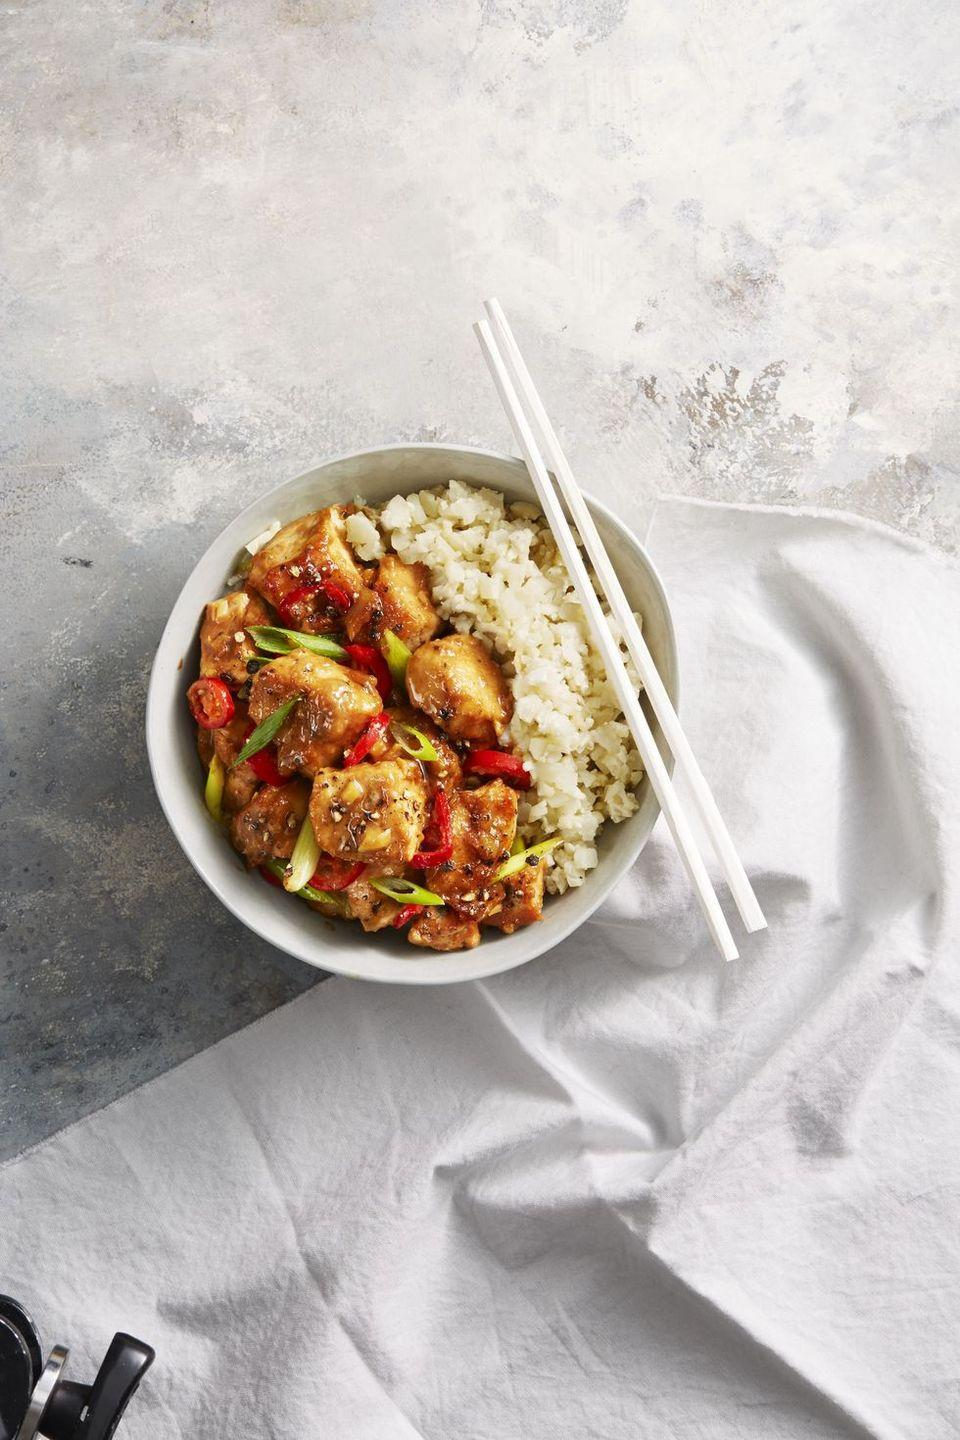 "<p>Pair your favorite Chinese-inspired dish with cauliflower rice instead of regular for a delicious, low-carb option.</p><p><em><a href=""https://www.goodhousekeeping.com/food-recipes/healthy/a42219/spicy-chicken-miso-stir-fry-recipe/"" rel=""nofollow noopener"" target=""_blank"" data-ylk=""slk:Get the recipe from Spicy Chicken Miso Stir-Fry »"" class=""link rapid-noclick-resp"">Get the recipe from Spicy Chicken Miso Stir-Fry »</a></em></p><p><strong>RELATED: </strong><a href=""https://www.goodhousekeeping.com/food-recipes/g3165/cauliflower-recipes/"" rel=""nofollow noopener"" target=""_blank"" data-ylk=""slk:30 Crazy-Delicious Cauliflower Recipes to Instantly Upgrade Your Veggie Game"" class=""link rapid-noclick-resp"">30 Crazy-Delicious Cauliflower Recipes to Instantly Upgrade Your Veggie Game</a><br></p>"